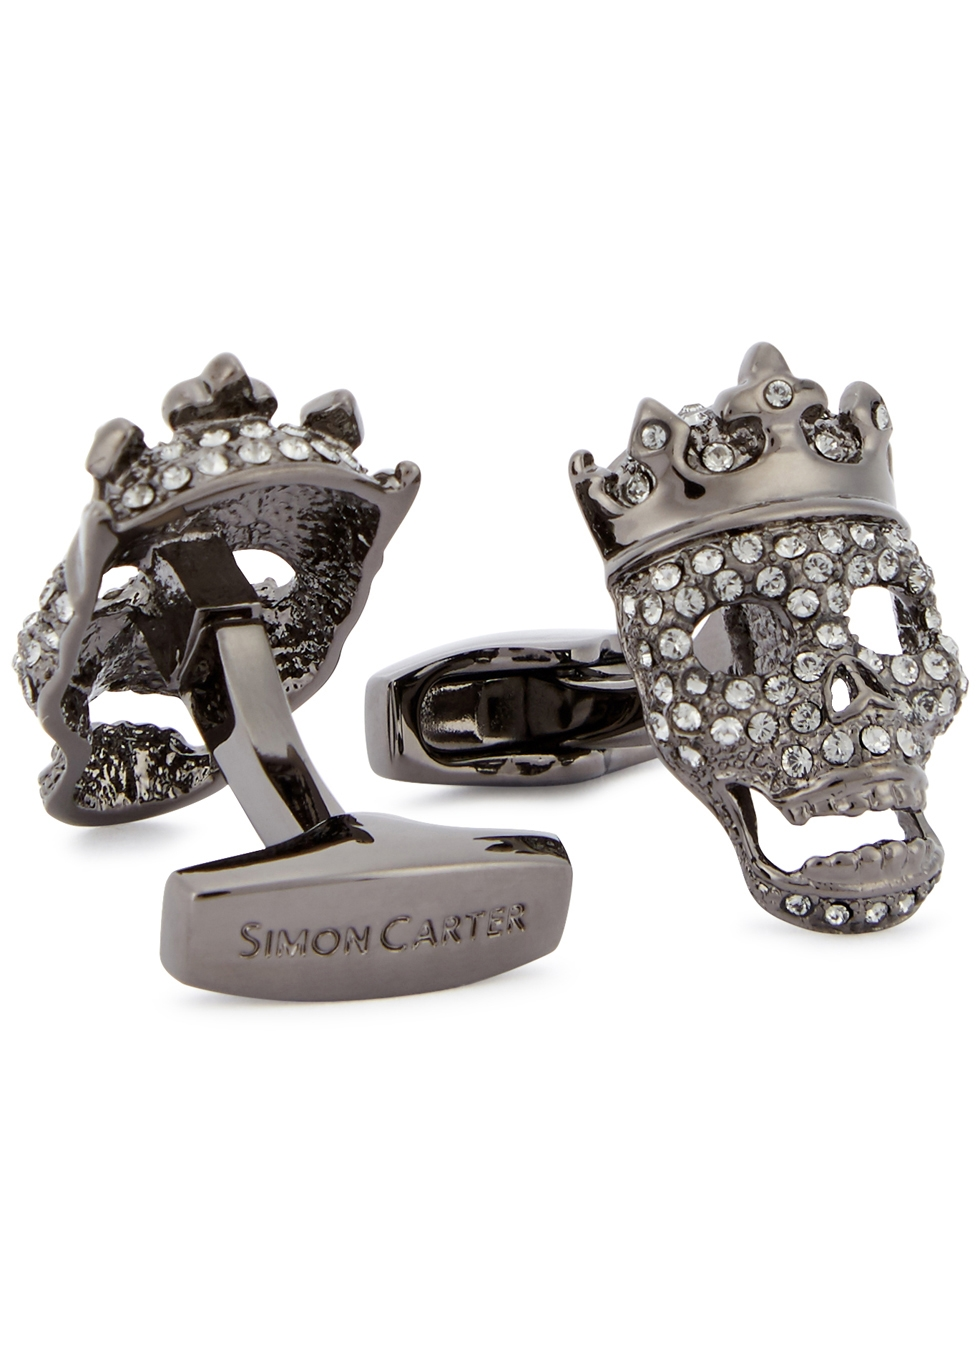 SIMON CARTER TATTOO CROWNED SWAROVSKI CUFFLINKS